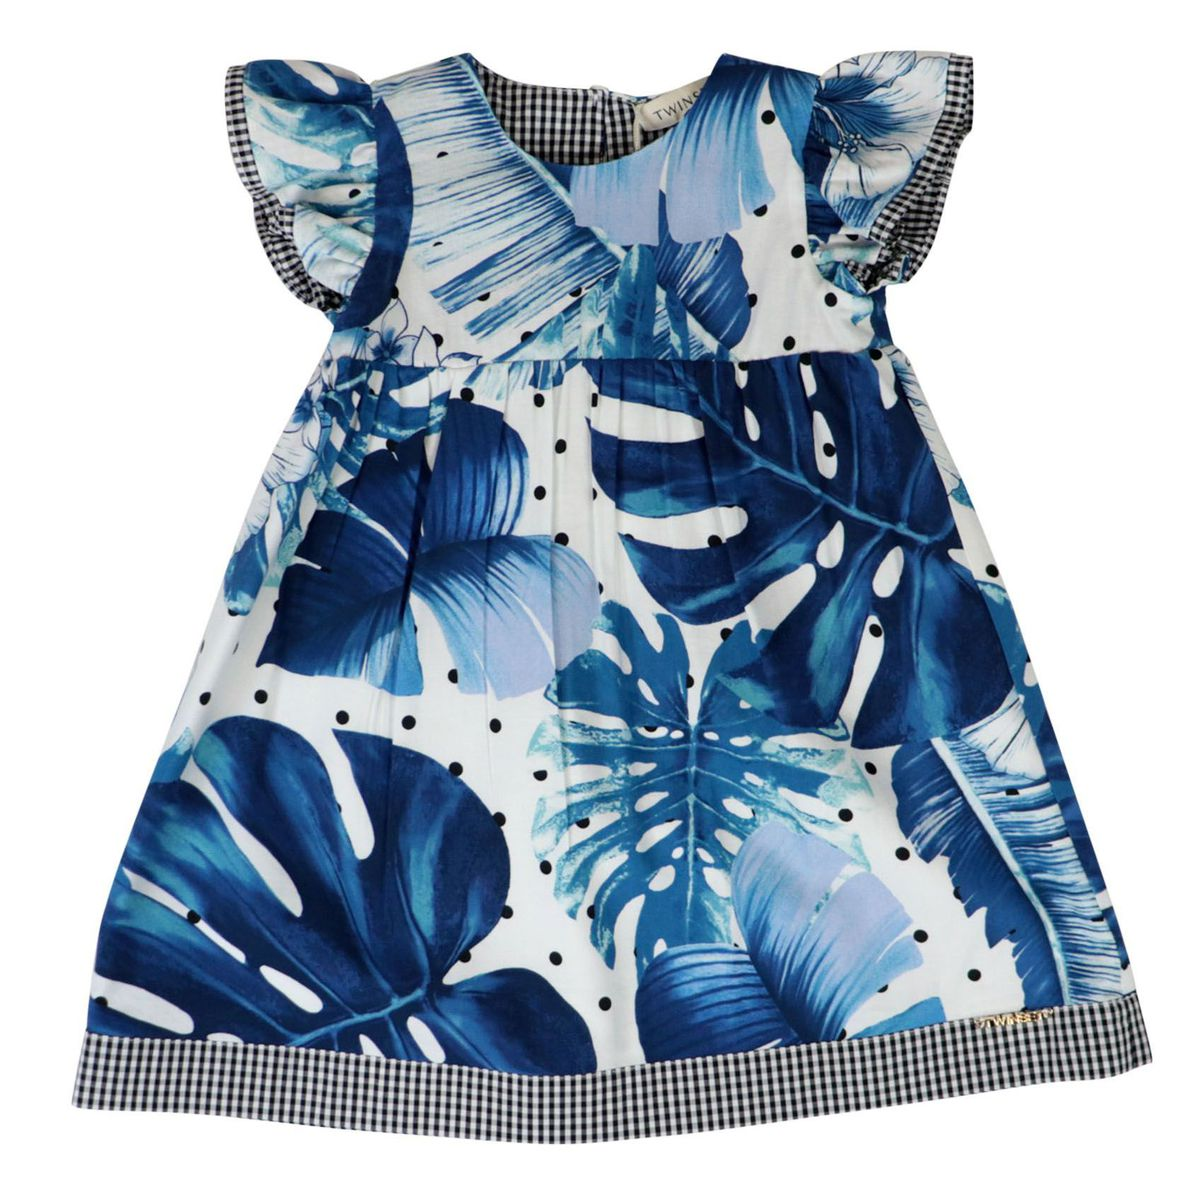 Printed twill dress with vichy fabric details Blue Twin-Set